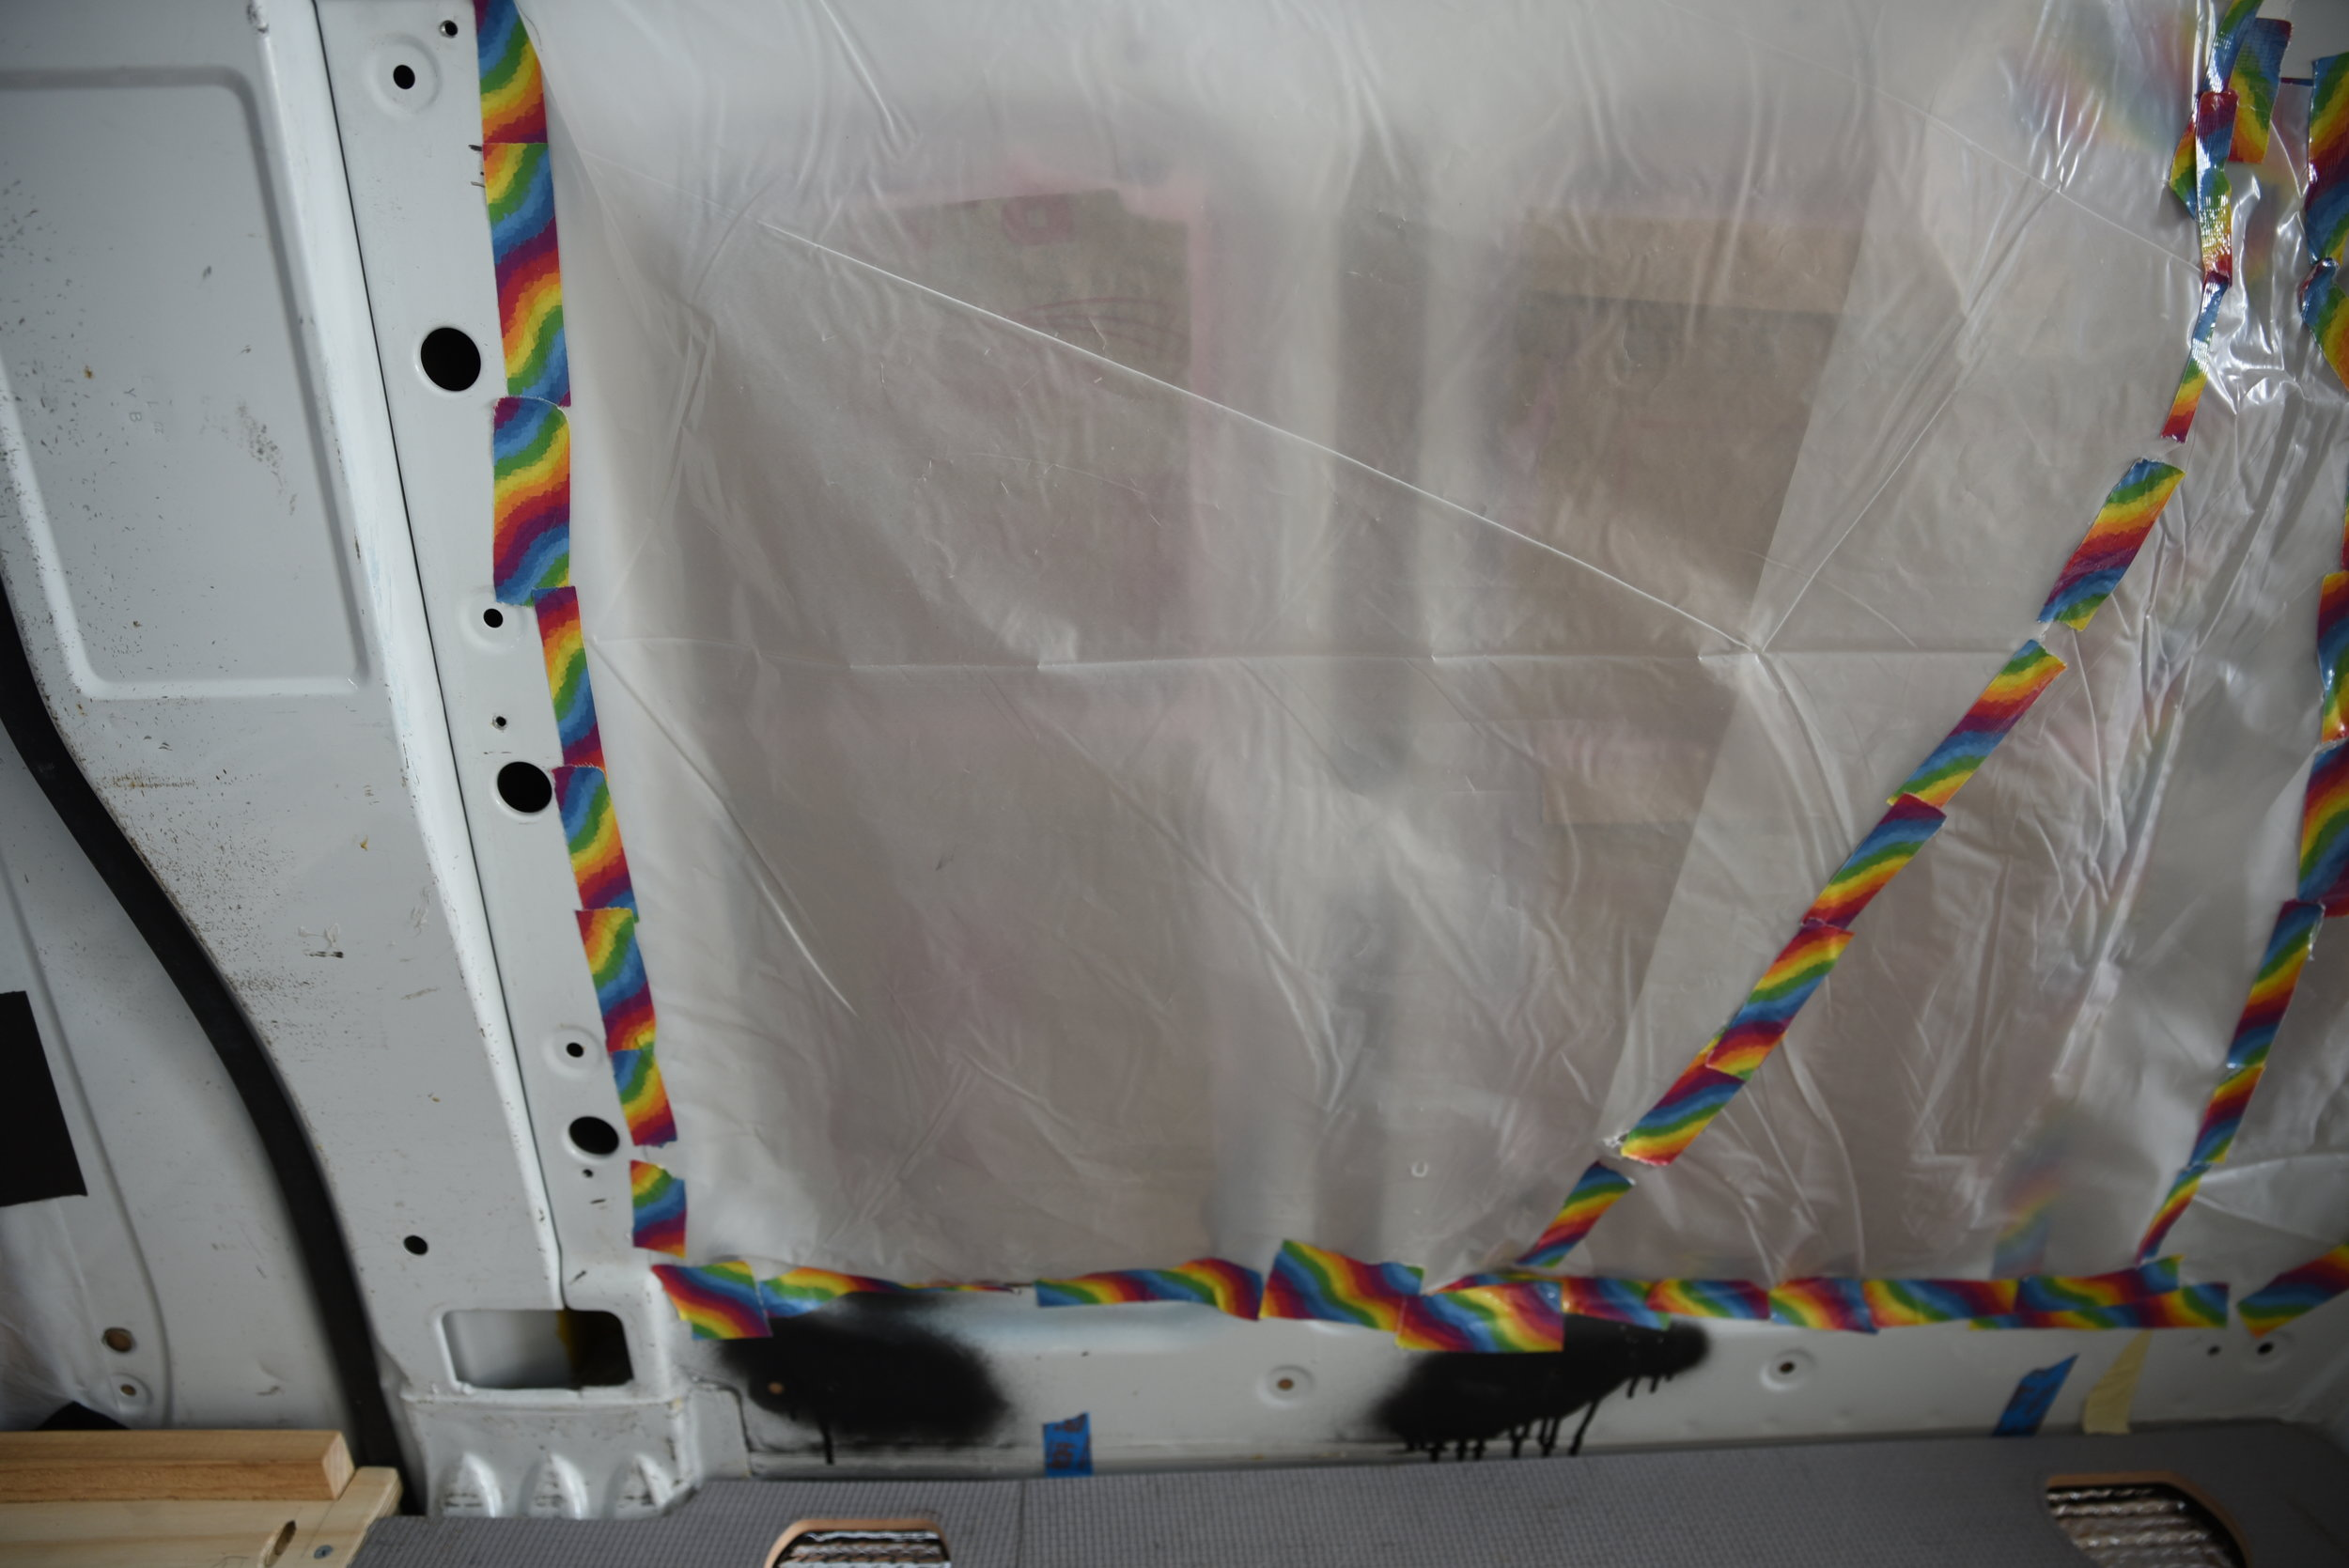 Rainbow duct tape is not required, but it is a bit more fun.